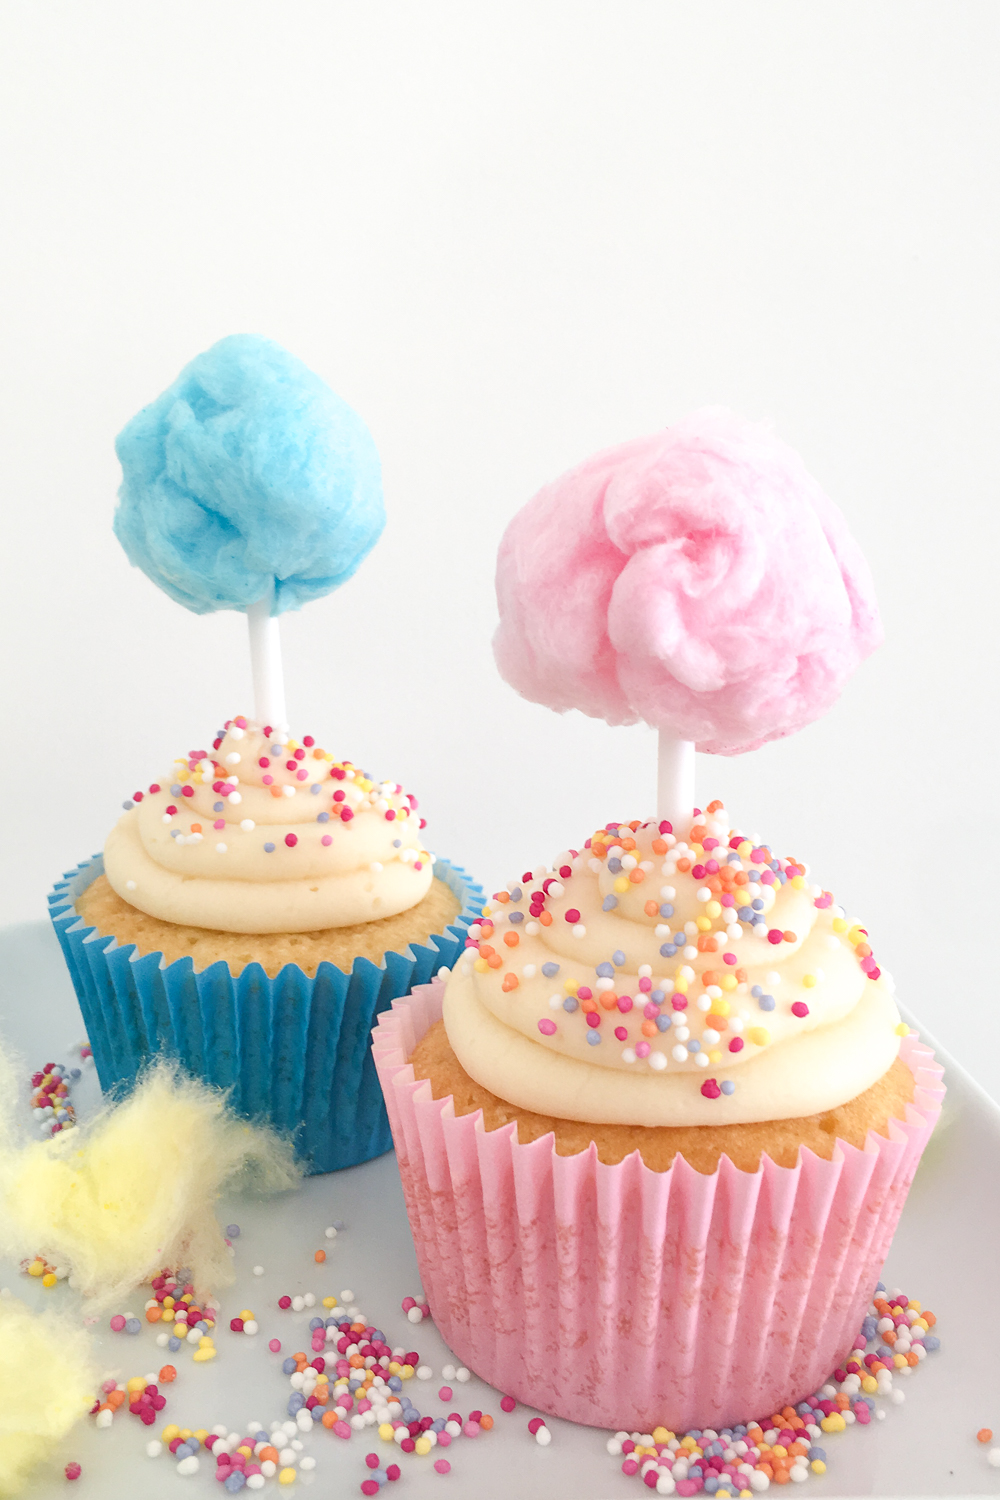 Candy Floss Cupcakes (Cotton Candy Cupcakes)   Club Crafted